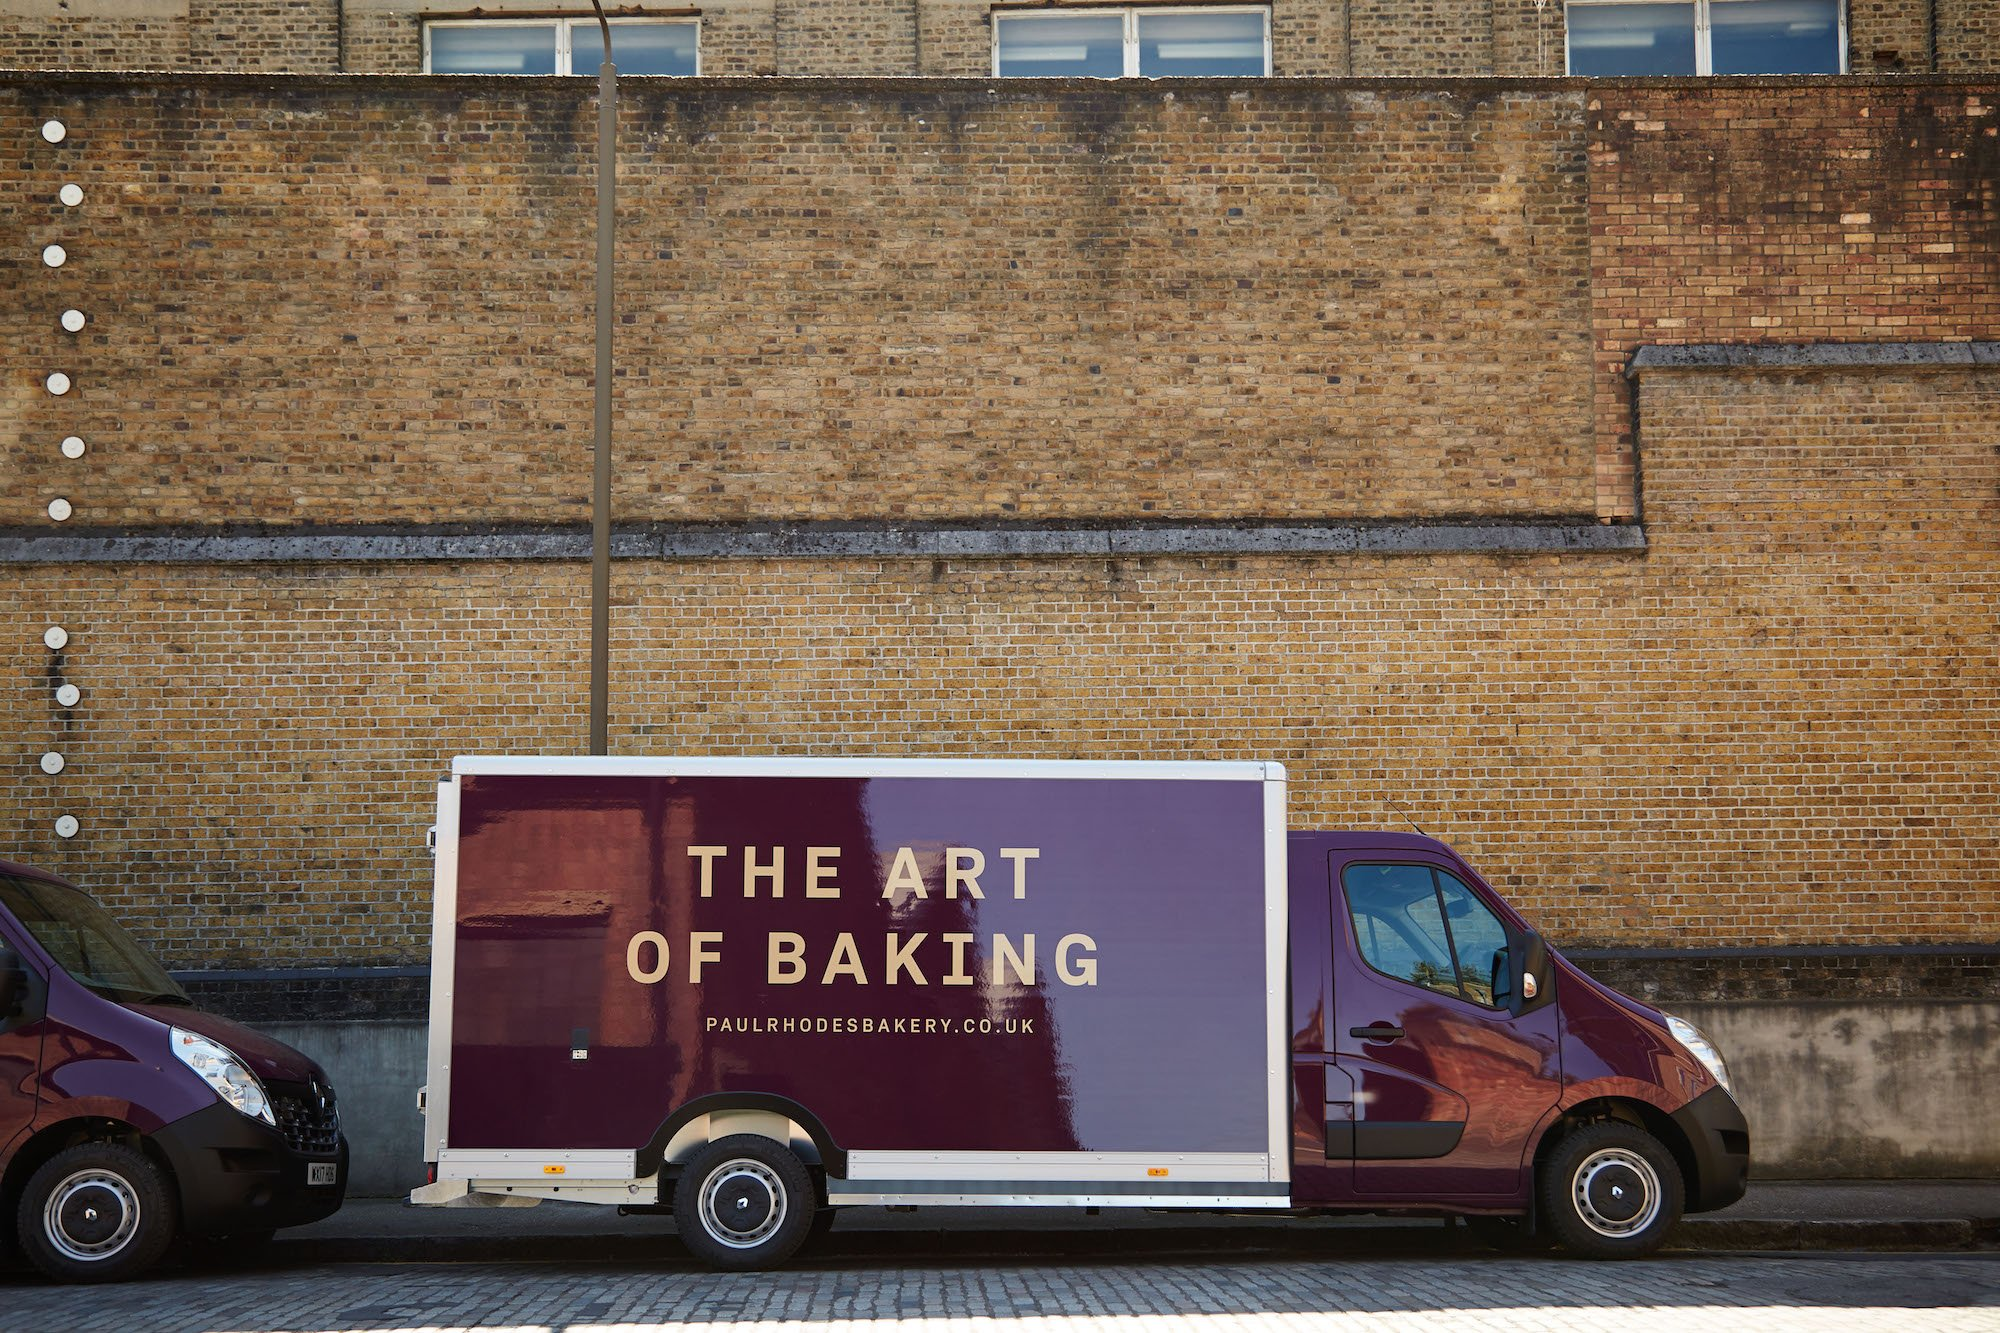 Paul Rhodes Bakery 'The Art of Baking' by Spinach